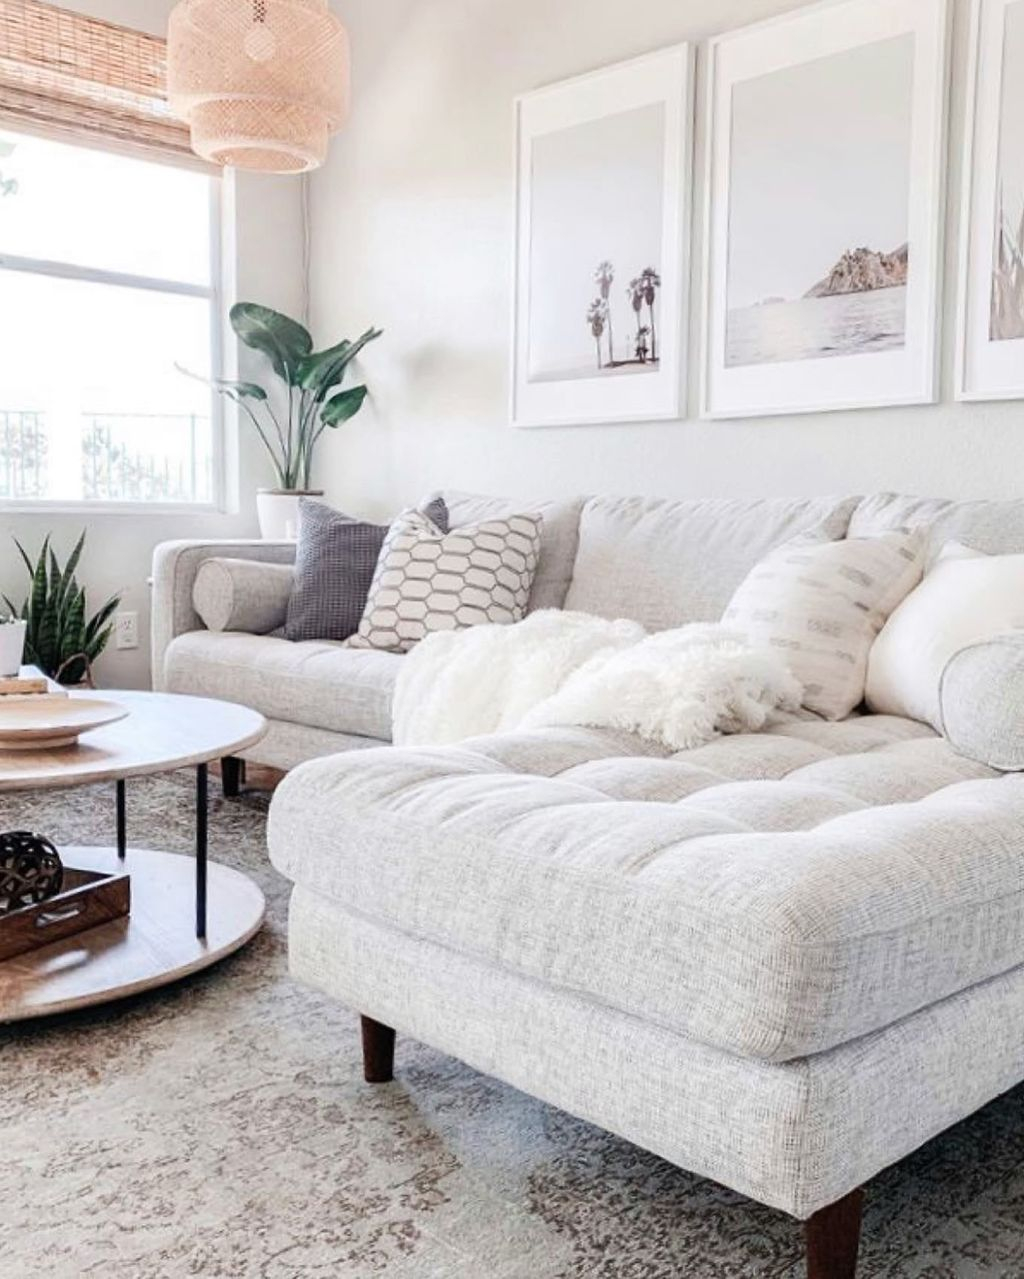 Vintage Home Interior Design Ideas For Awesome Living Room 29